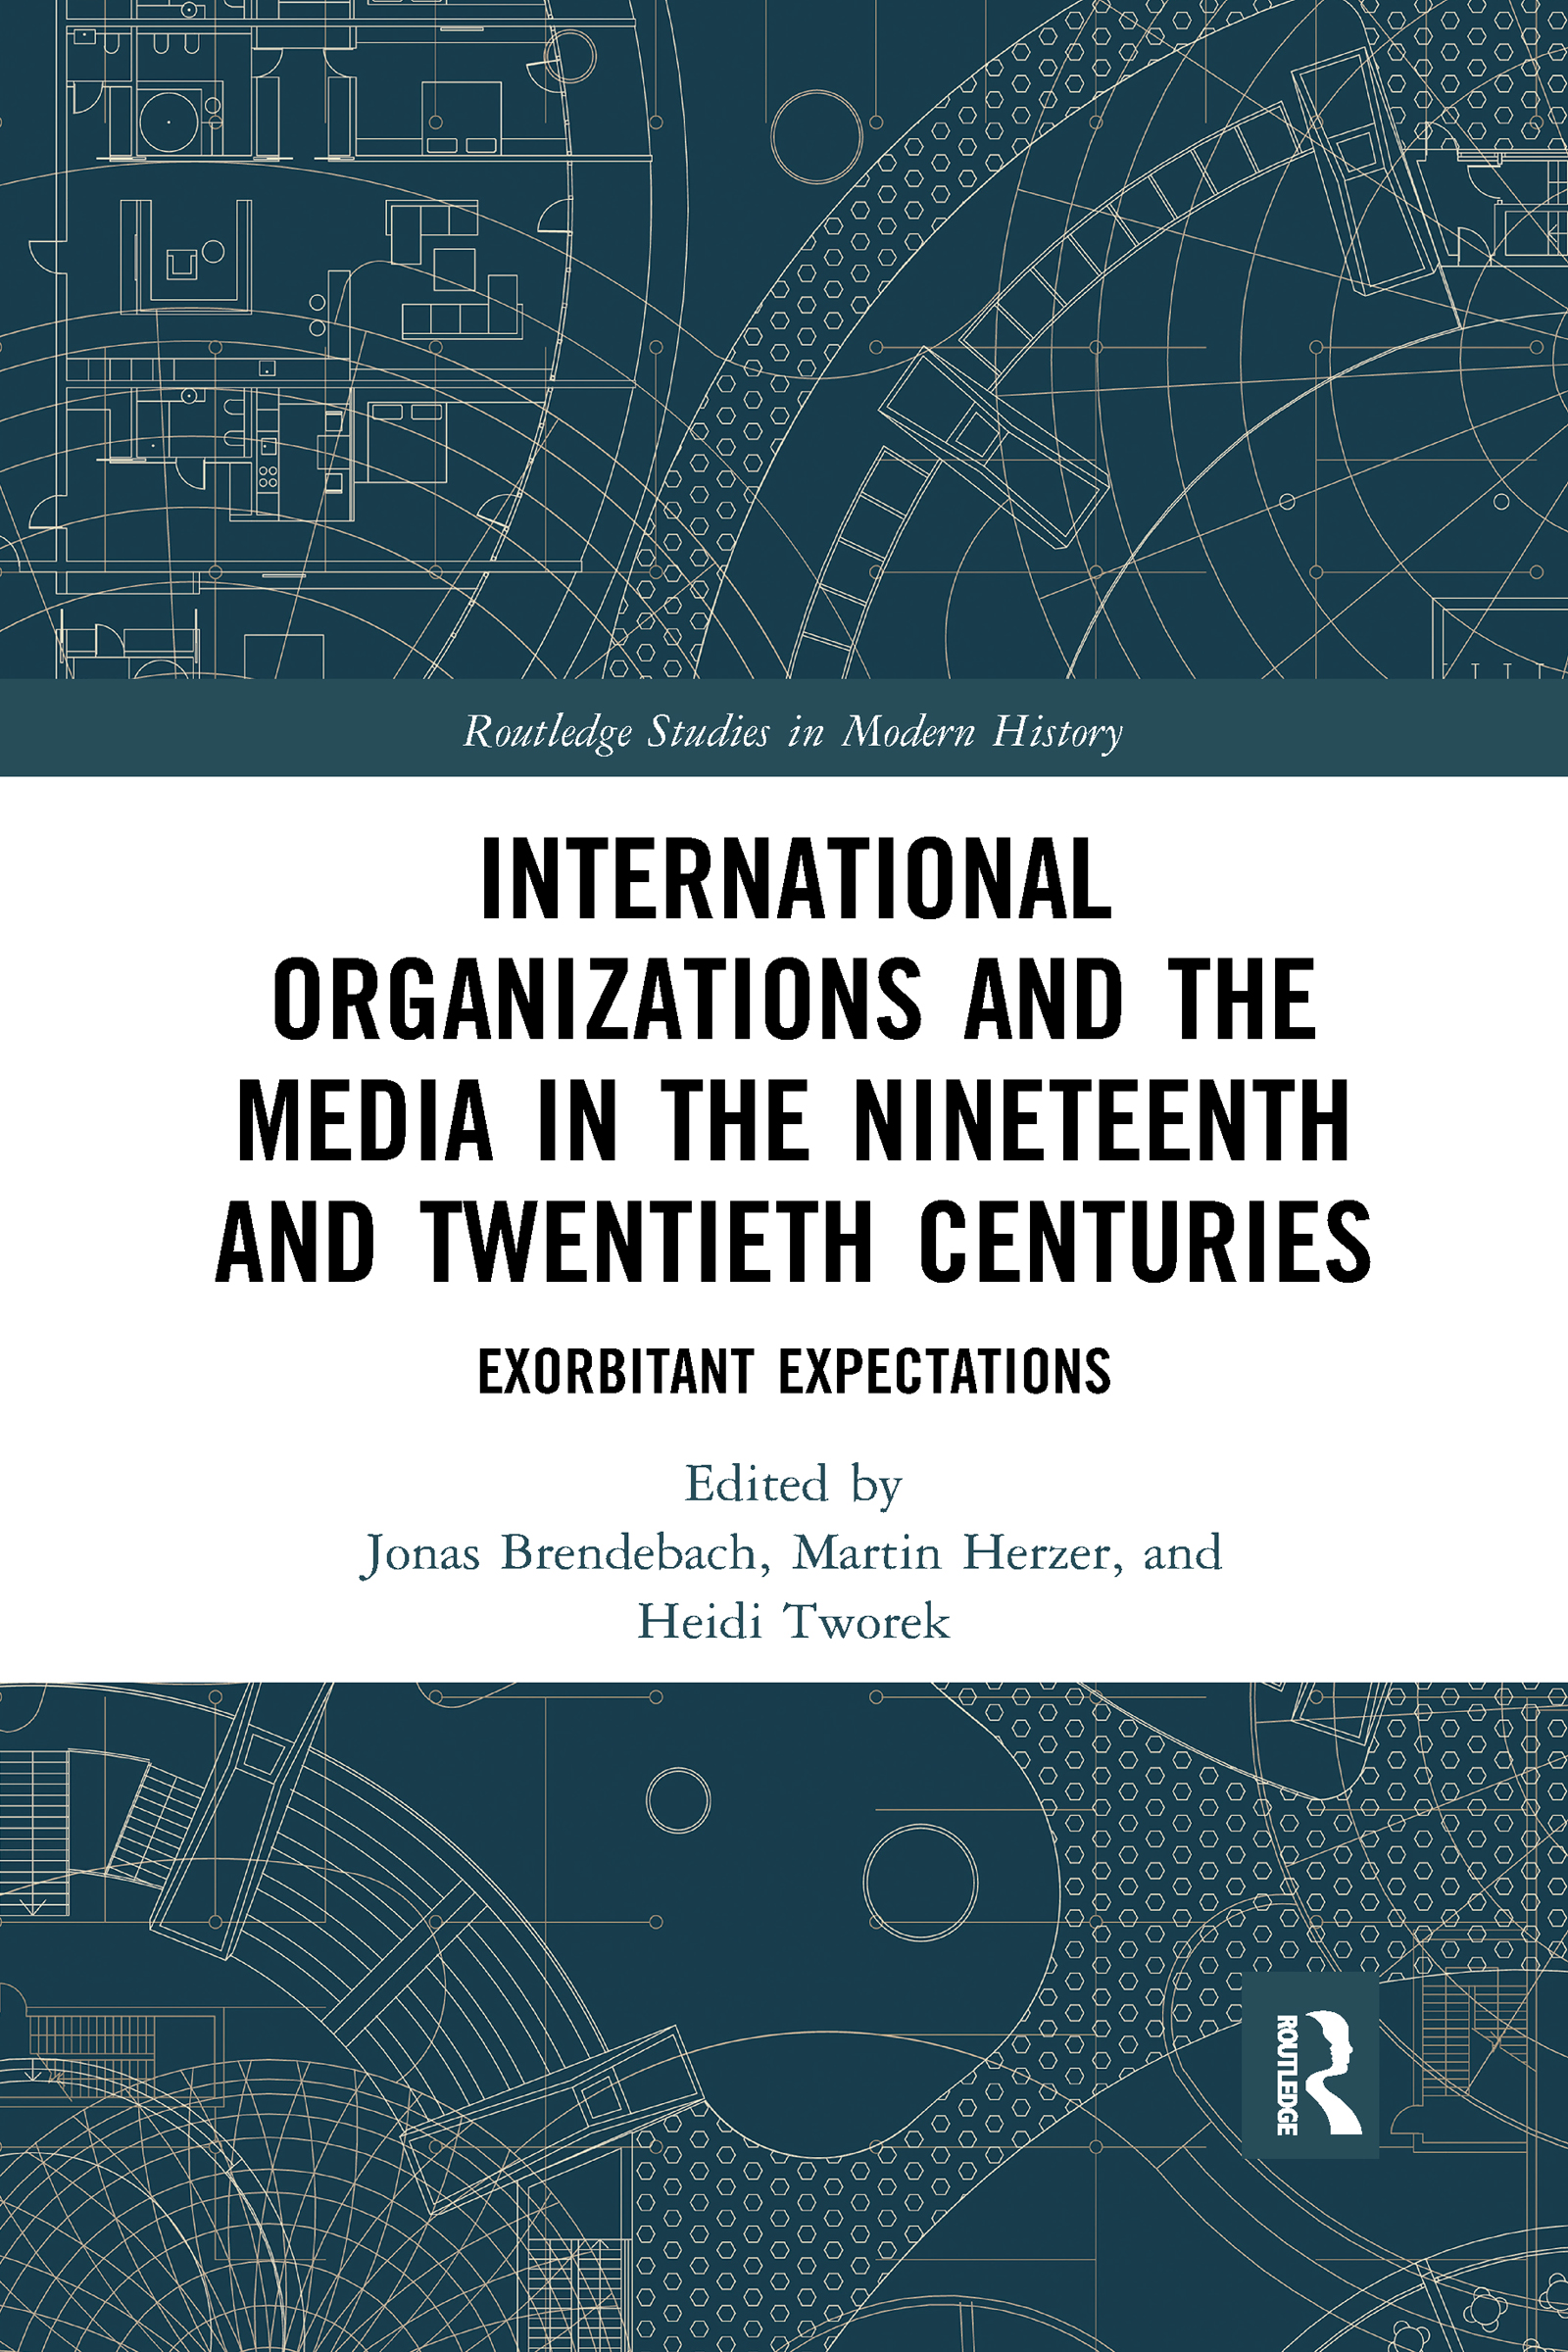 International Organizations and the Media in the Nineteenth and Twentieth Centuries